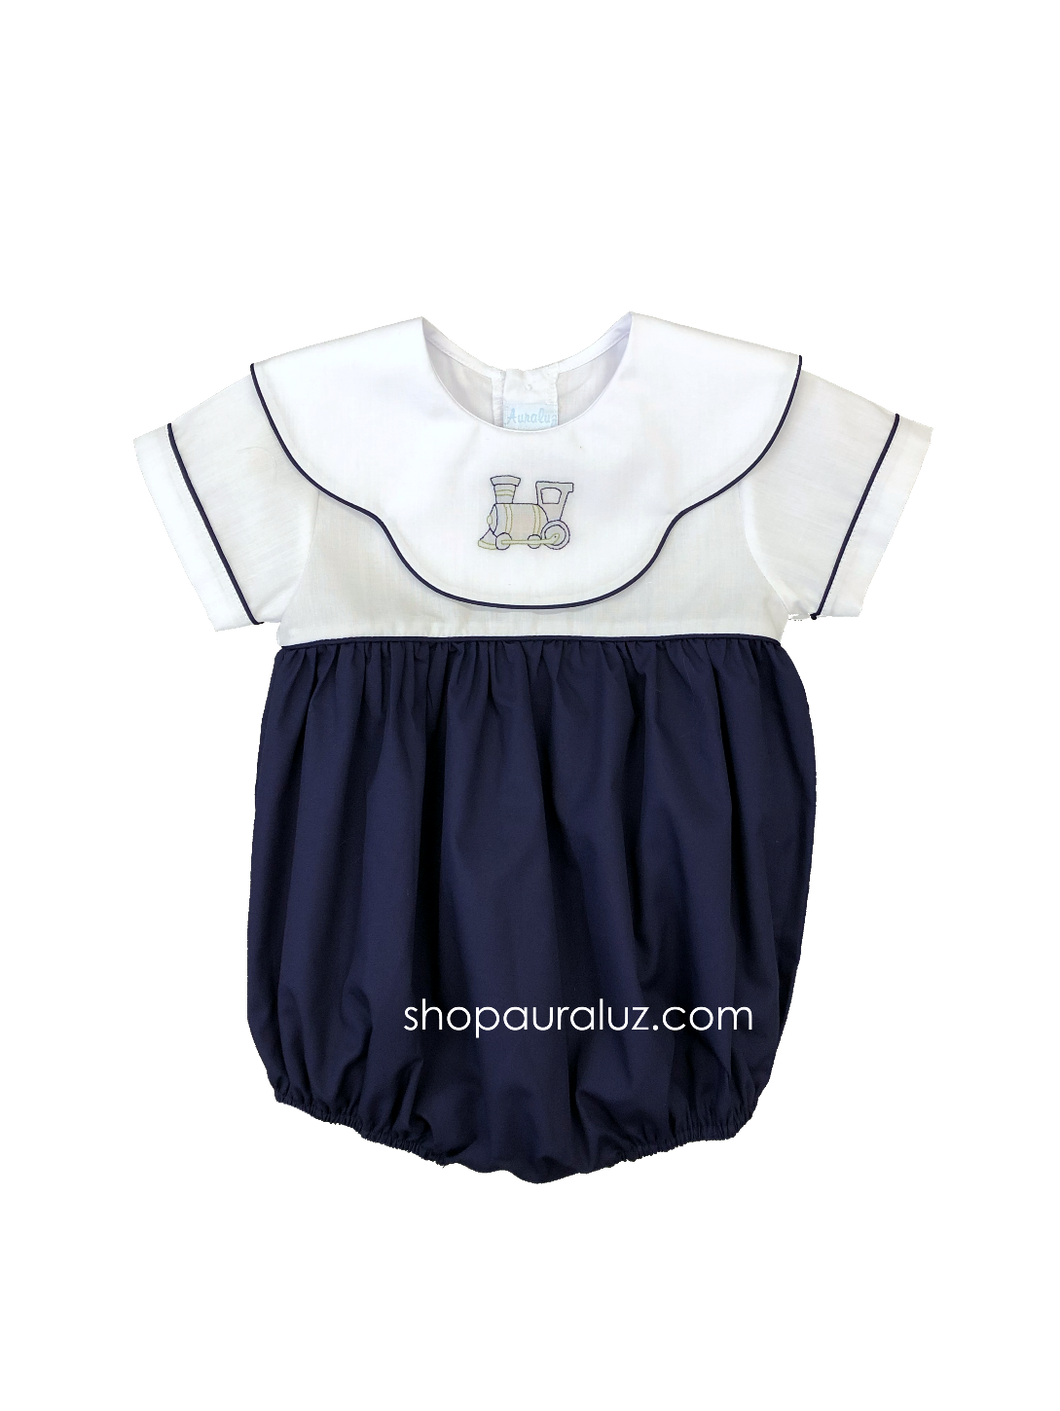 Auraluz Bubble, s/s...Navy w/binding, white scalloped collar and embroidered train